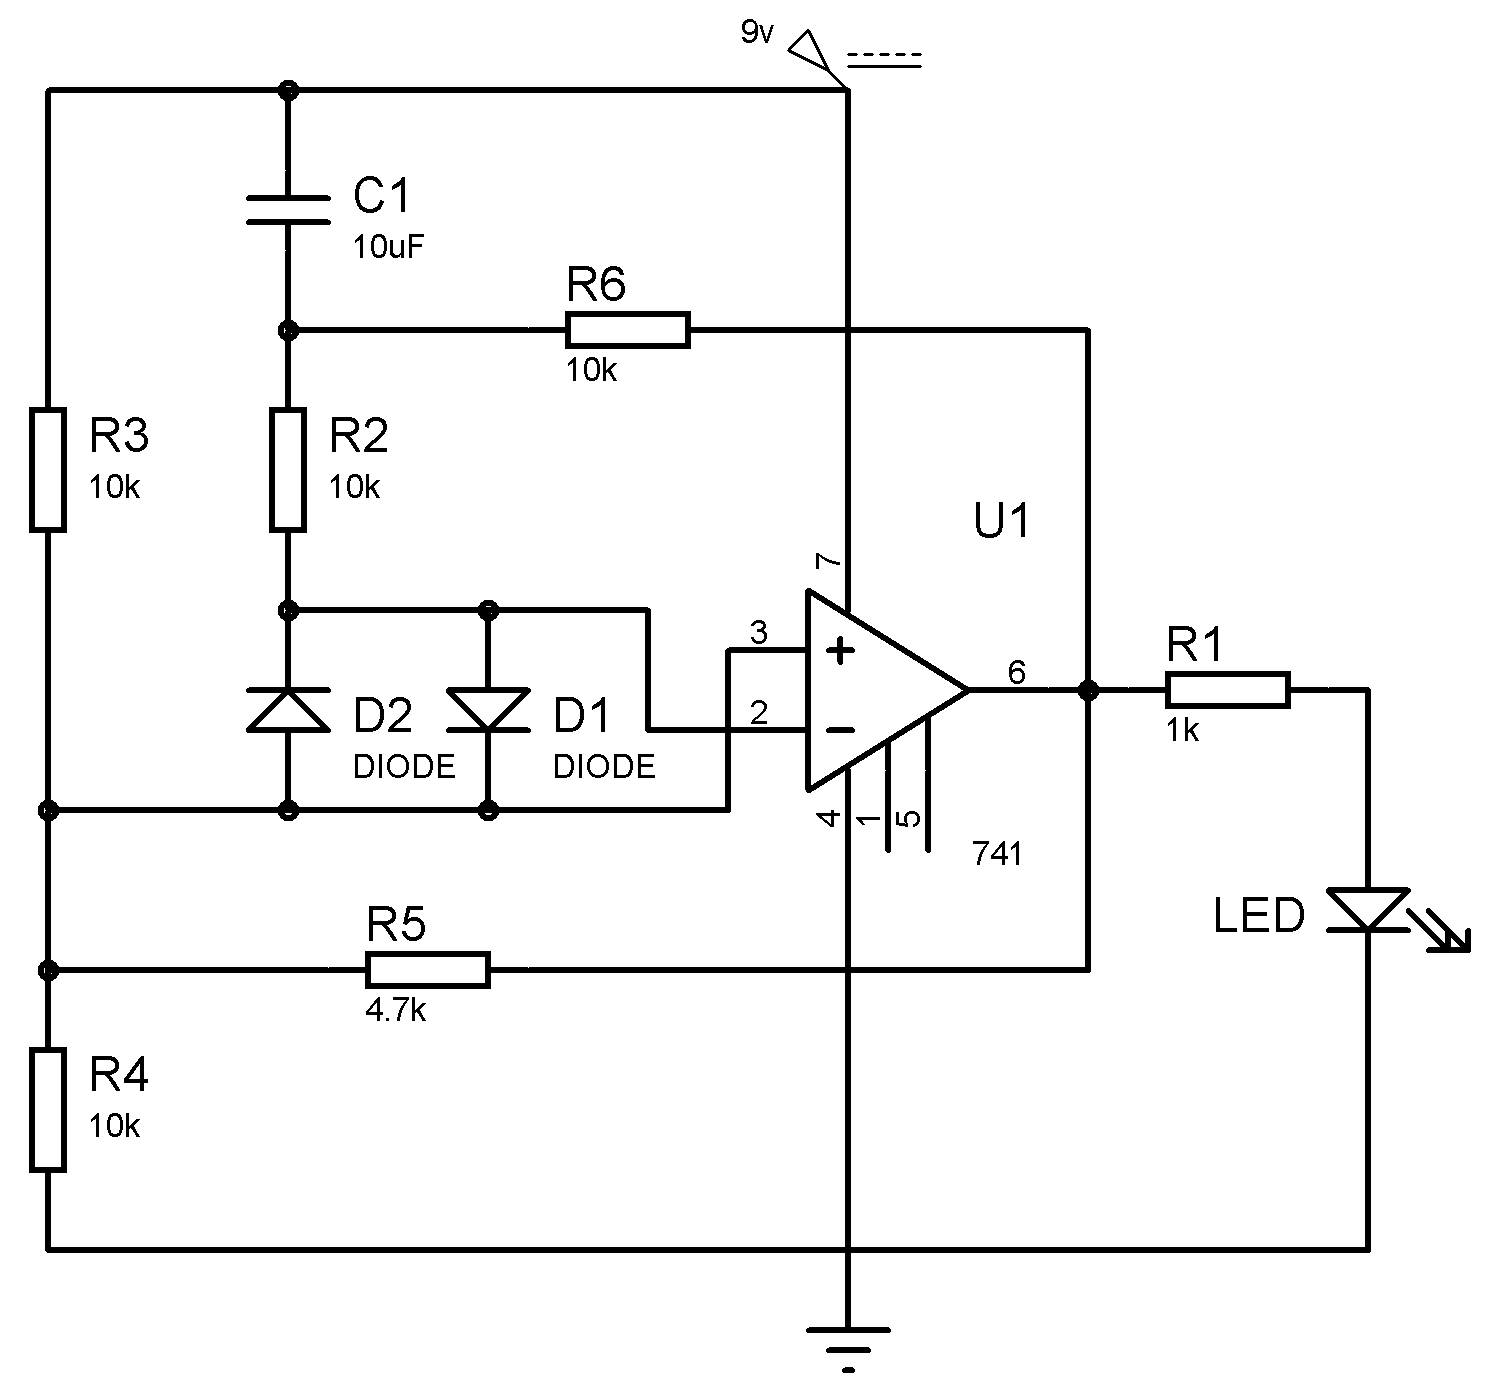 Op Amp Ic Lm741 Tester Circuit Diagram Led Blinker Opamp